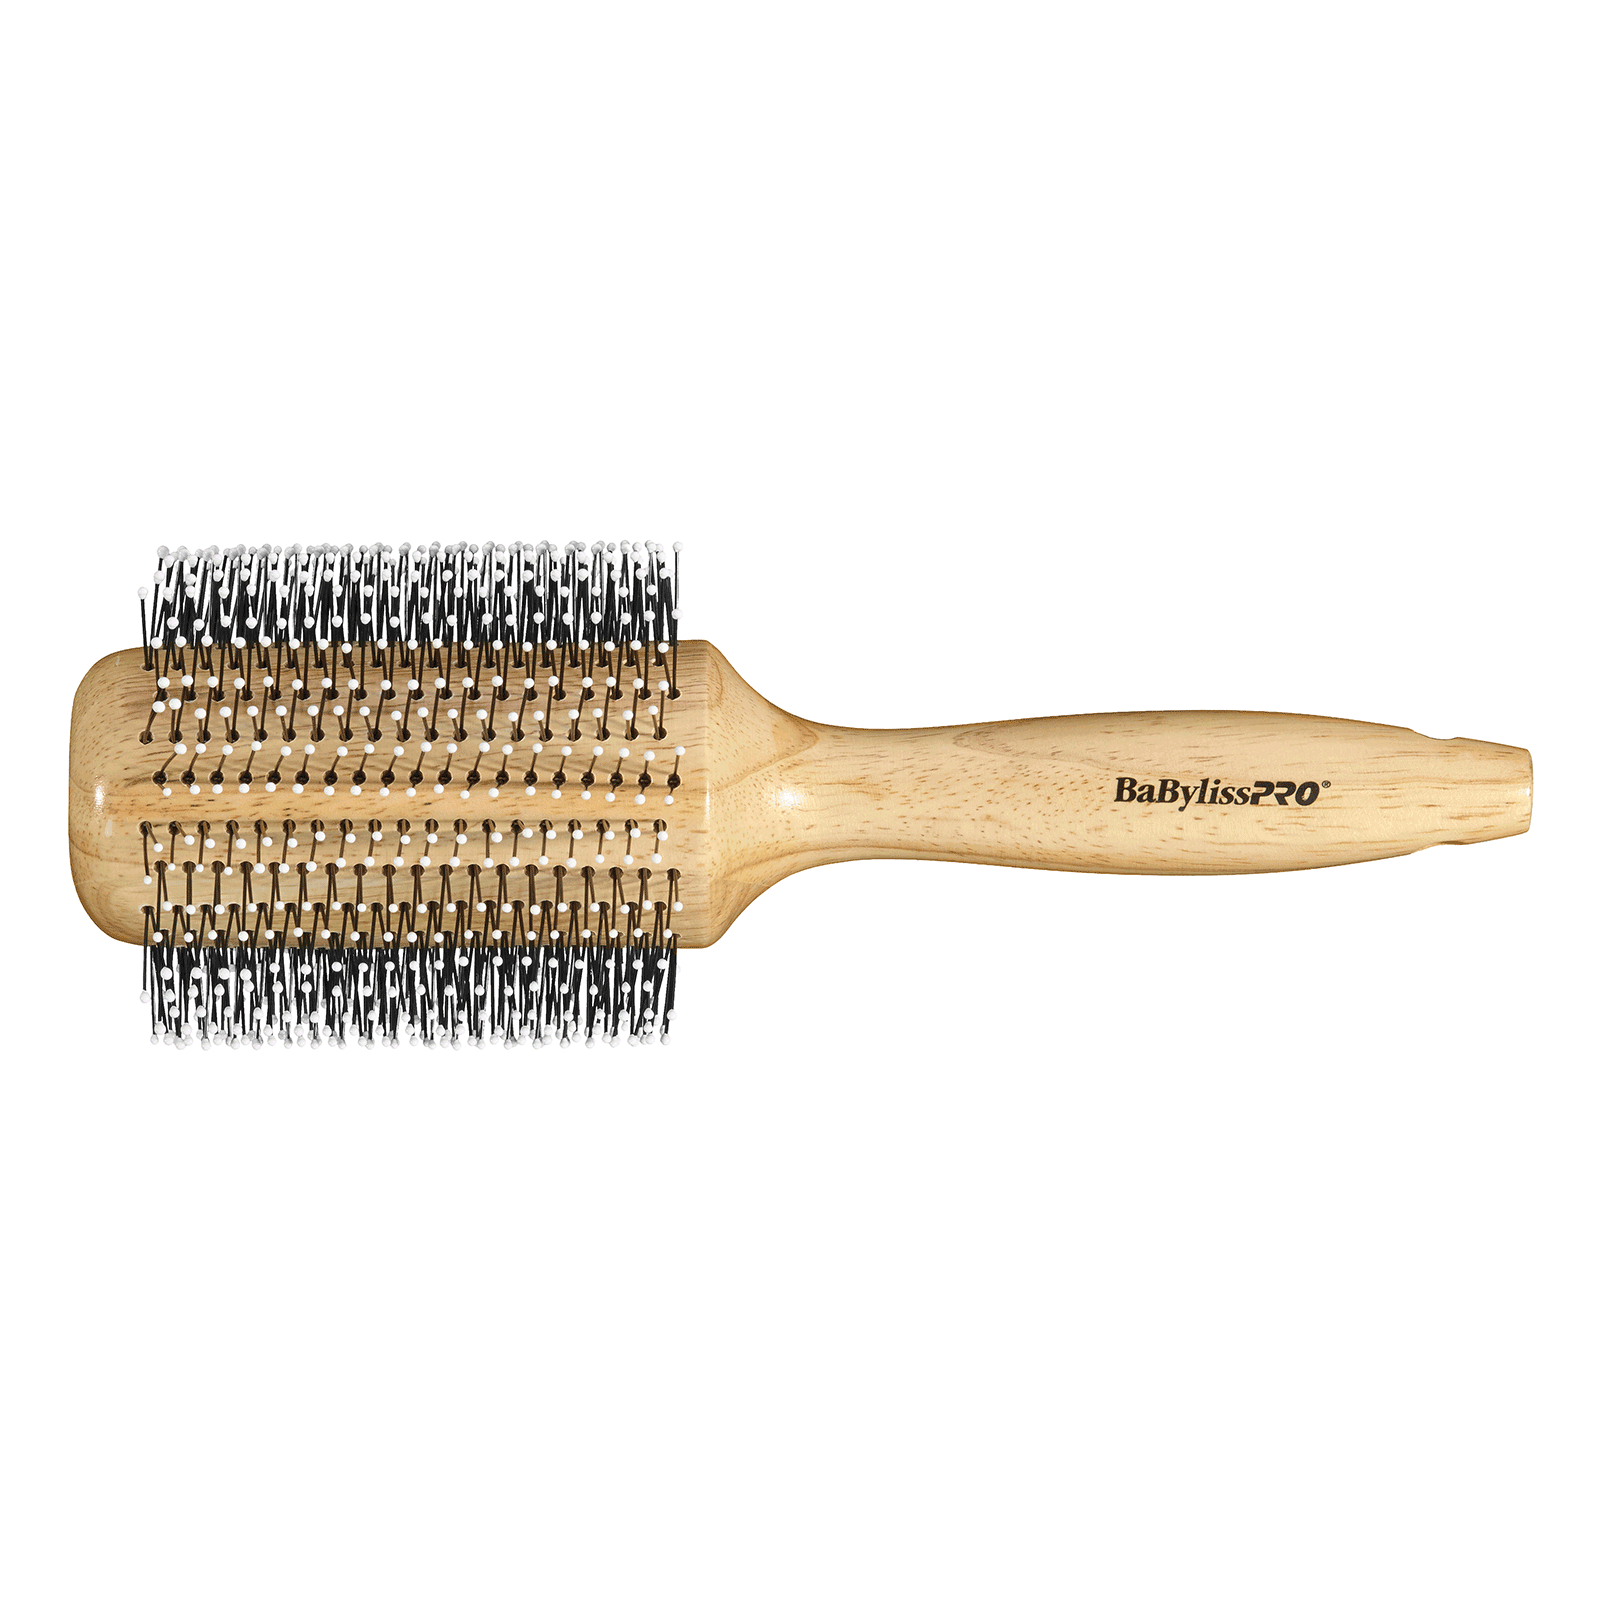 Babyliss Pro Wood Blow-Dry Brush - Extra Large